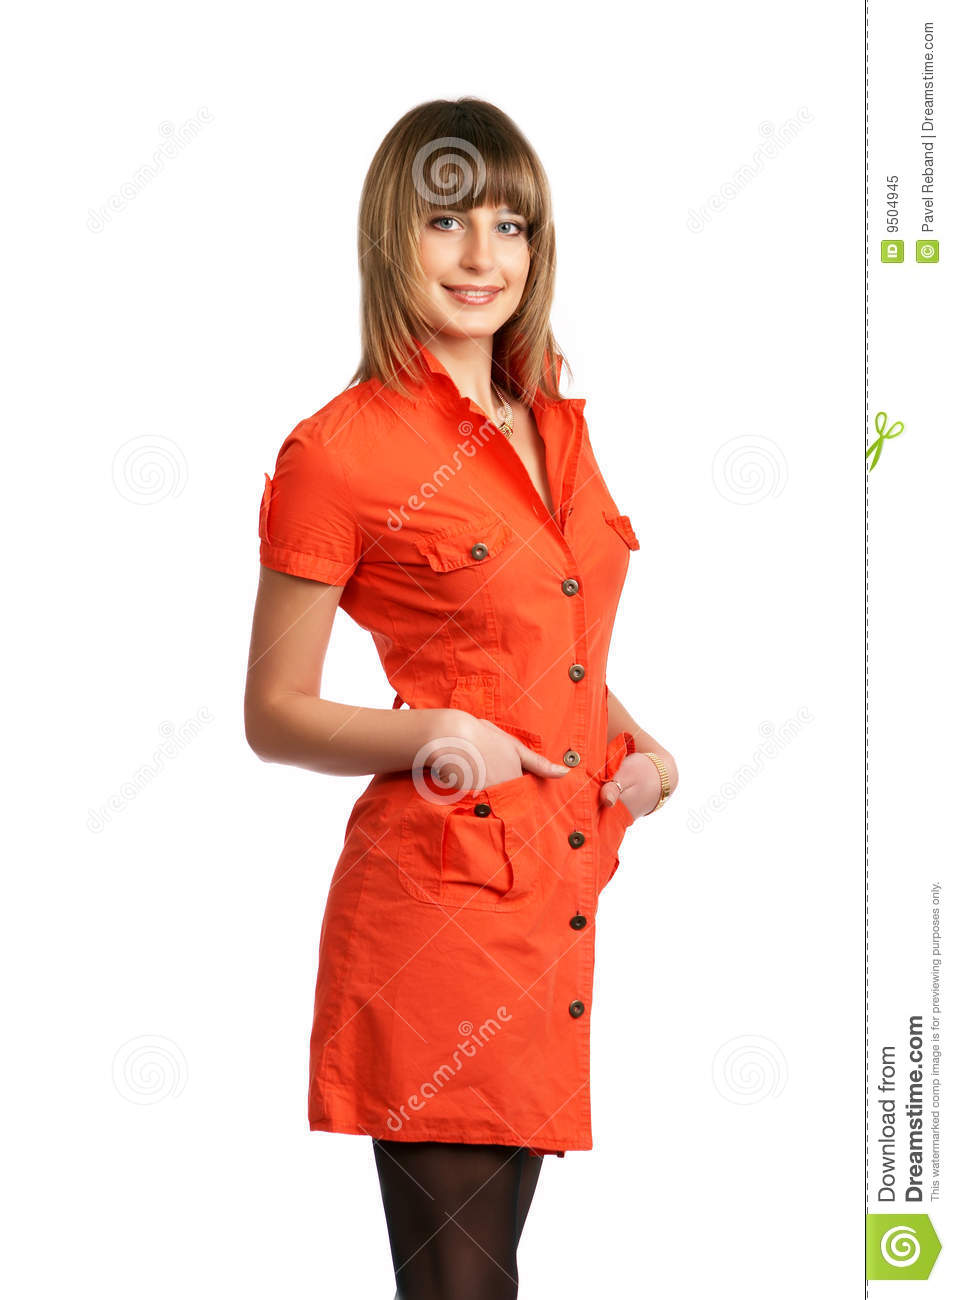 Glamor Girl In A Orange Dress Isolated Royalty Free Stock ...